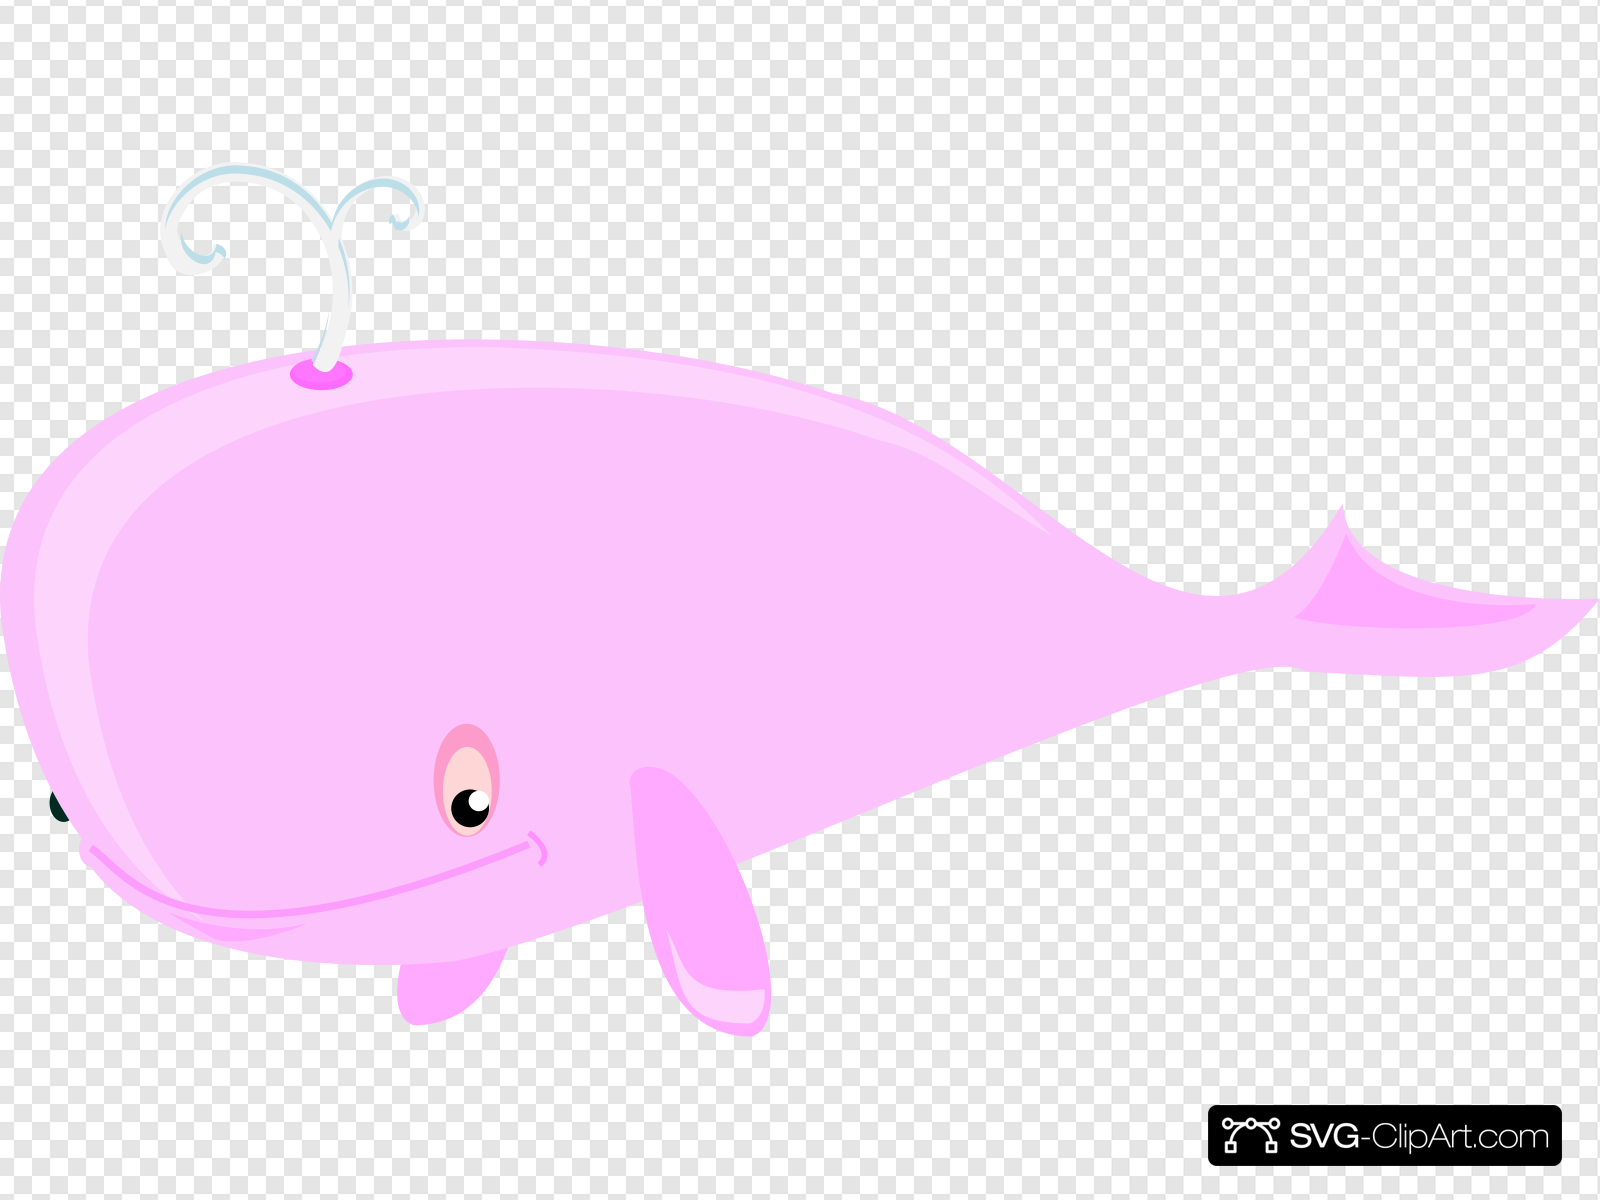 Pink Whale Clip art, Icon and SVG.